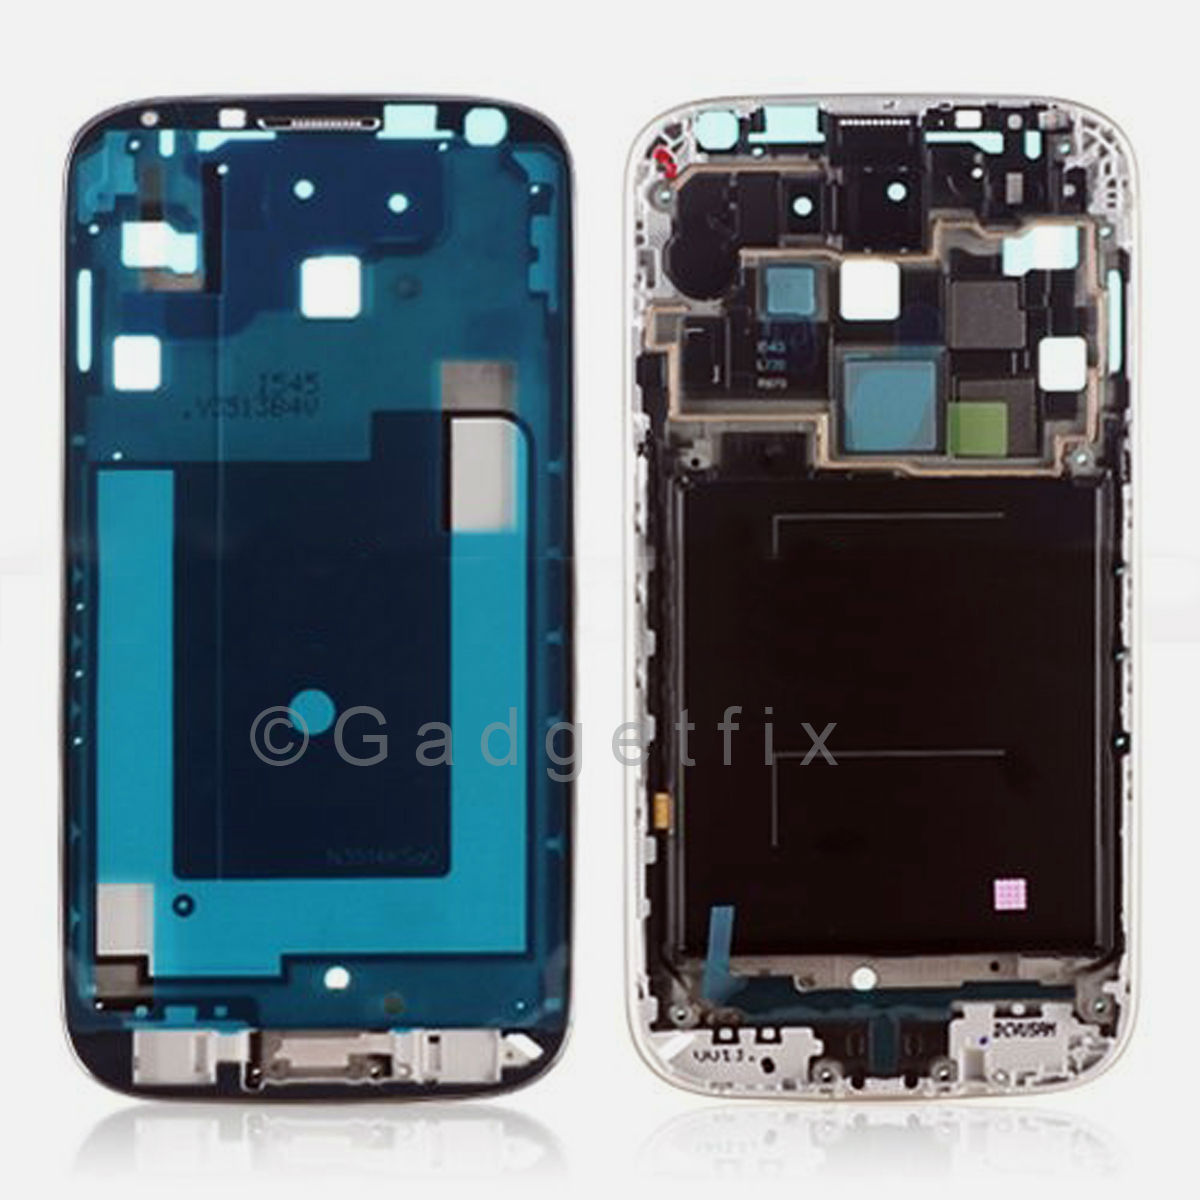 OEM Samsung Galaxy S4 I545 L720 R970 Faceplate Front Bezel Middle Frame Housing